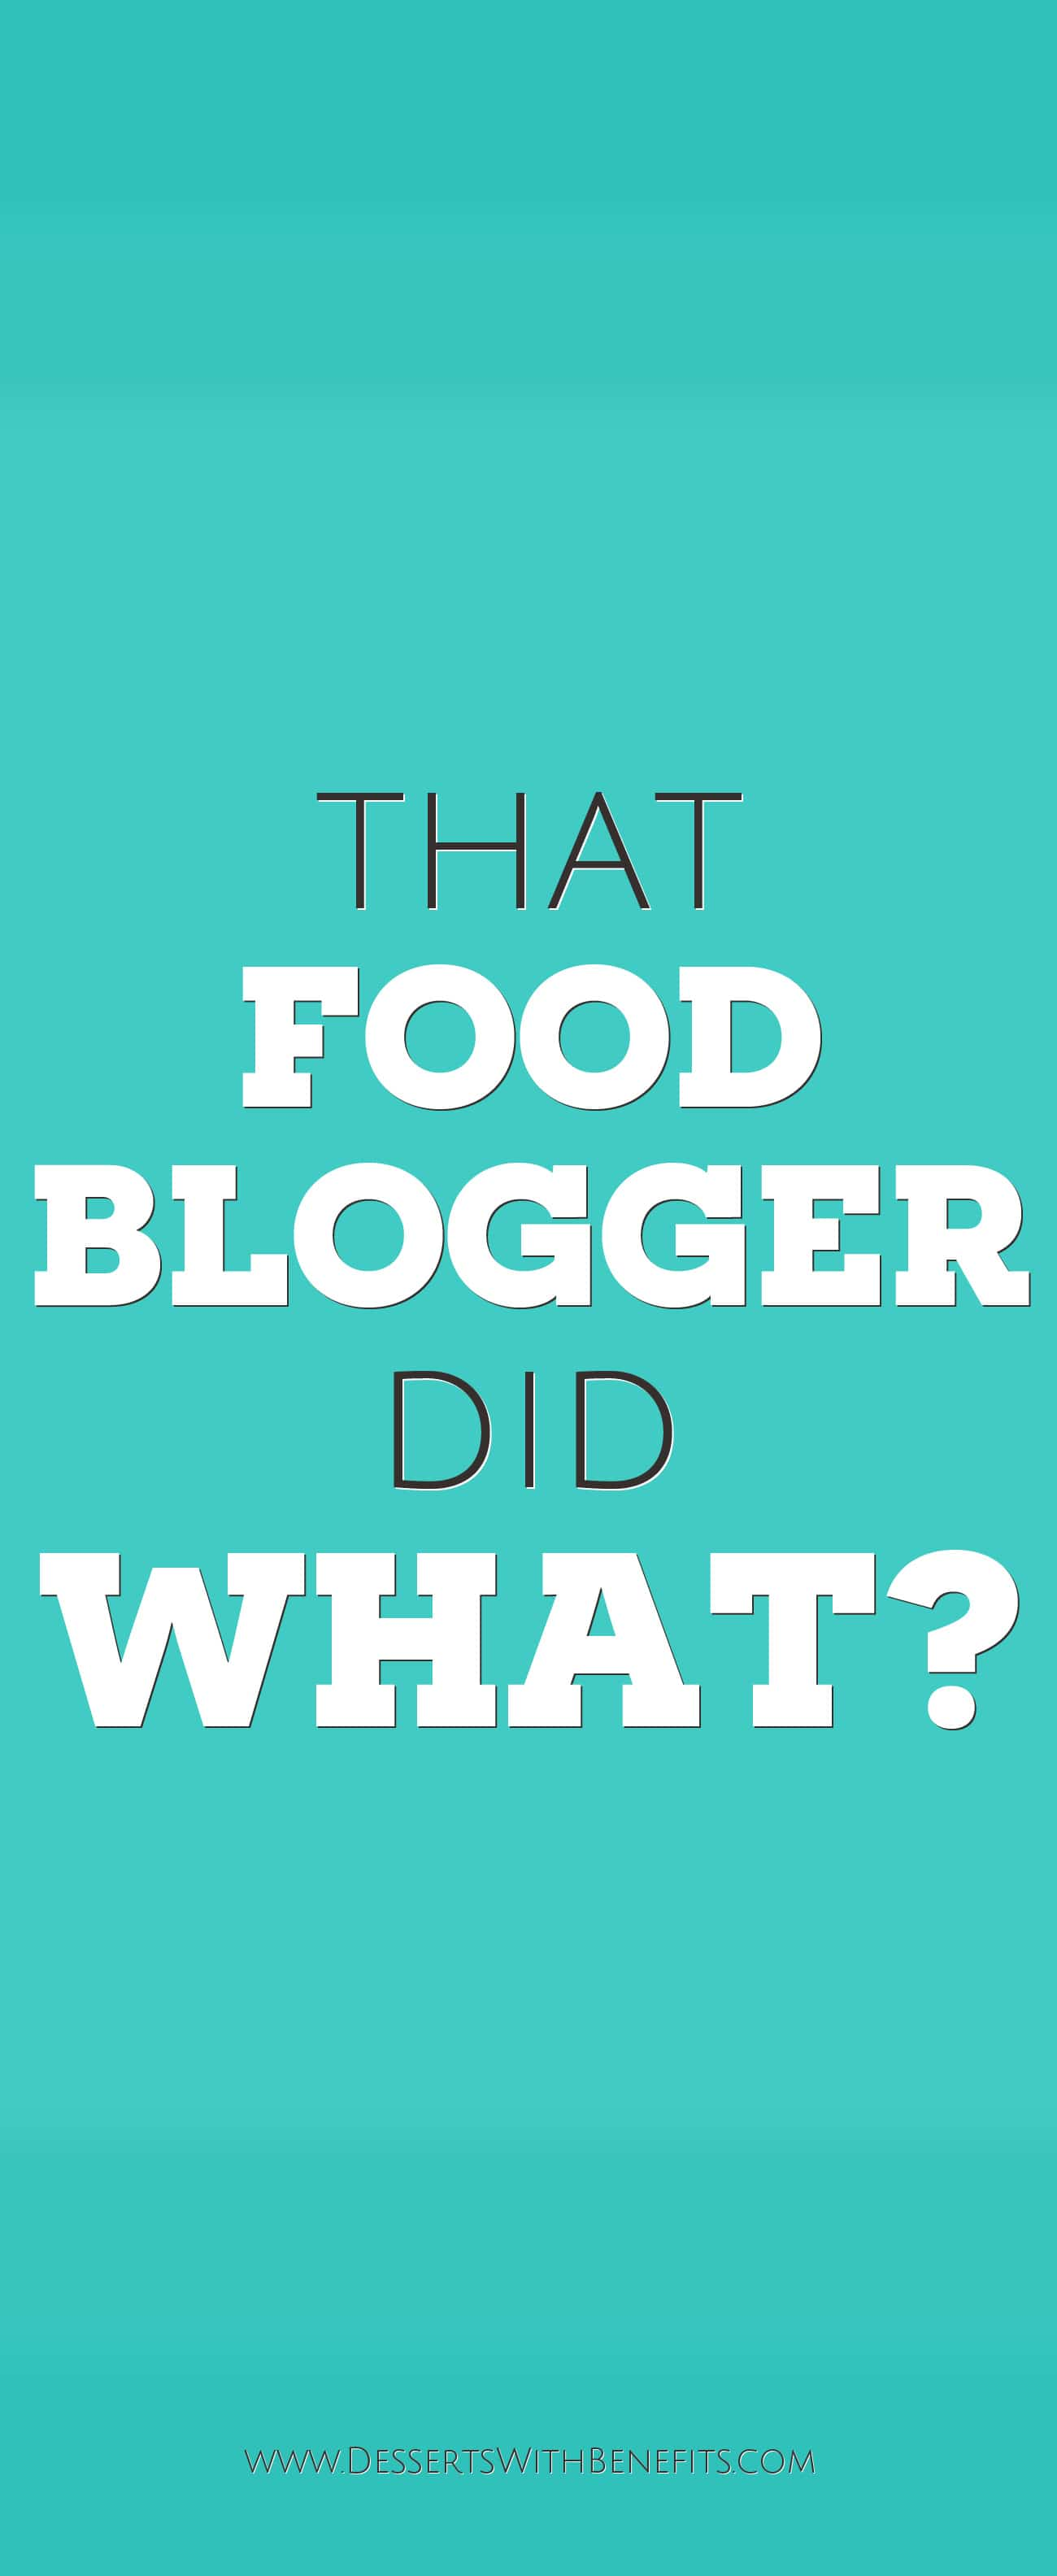 That Food Blogger Did What?? -- The Desserts With Benefits Blog